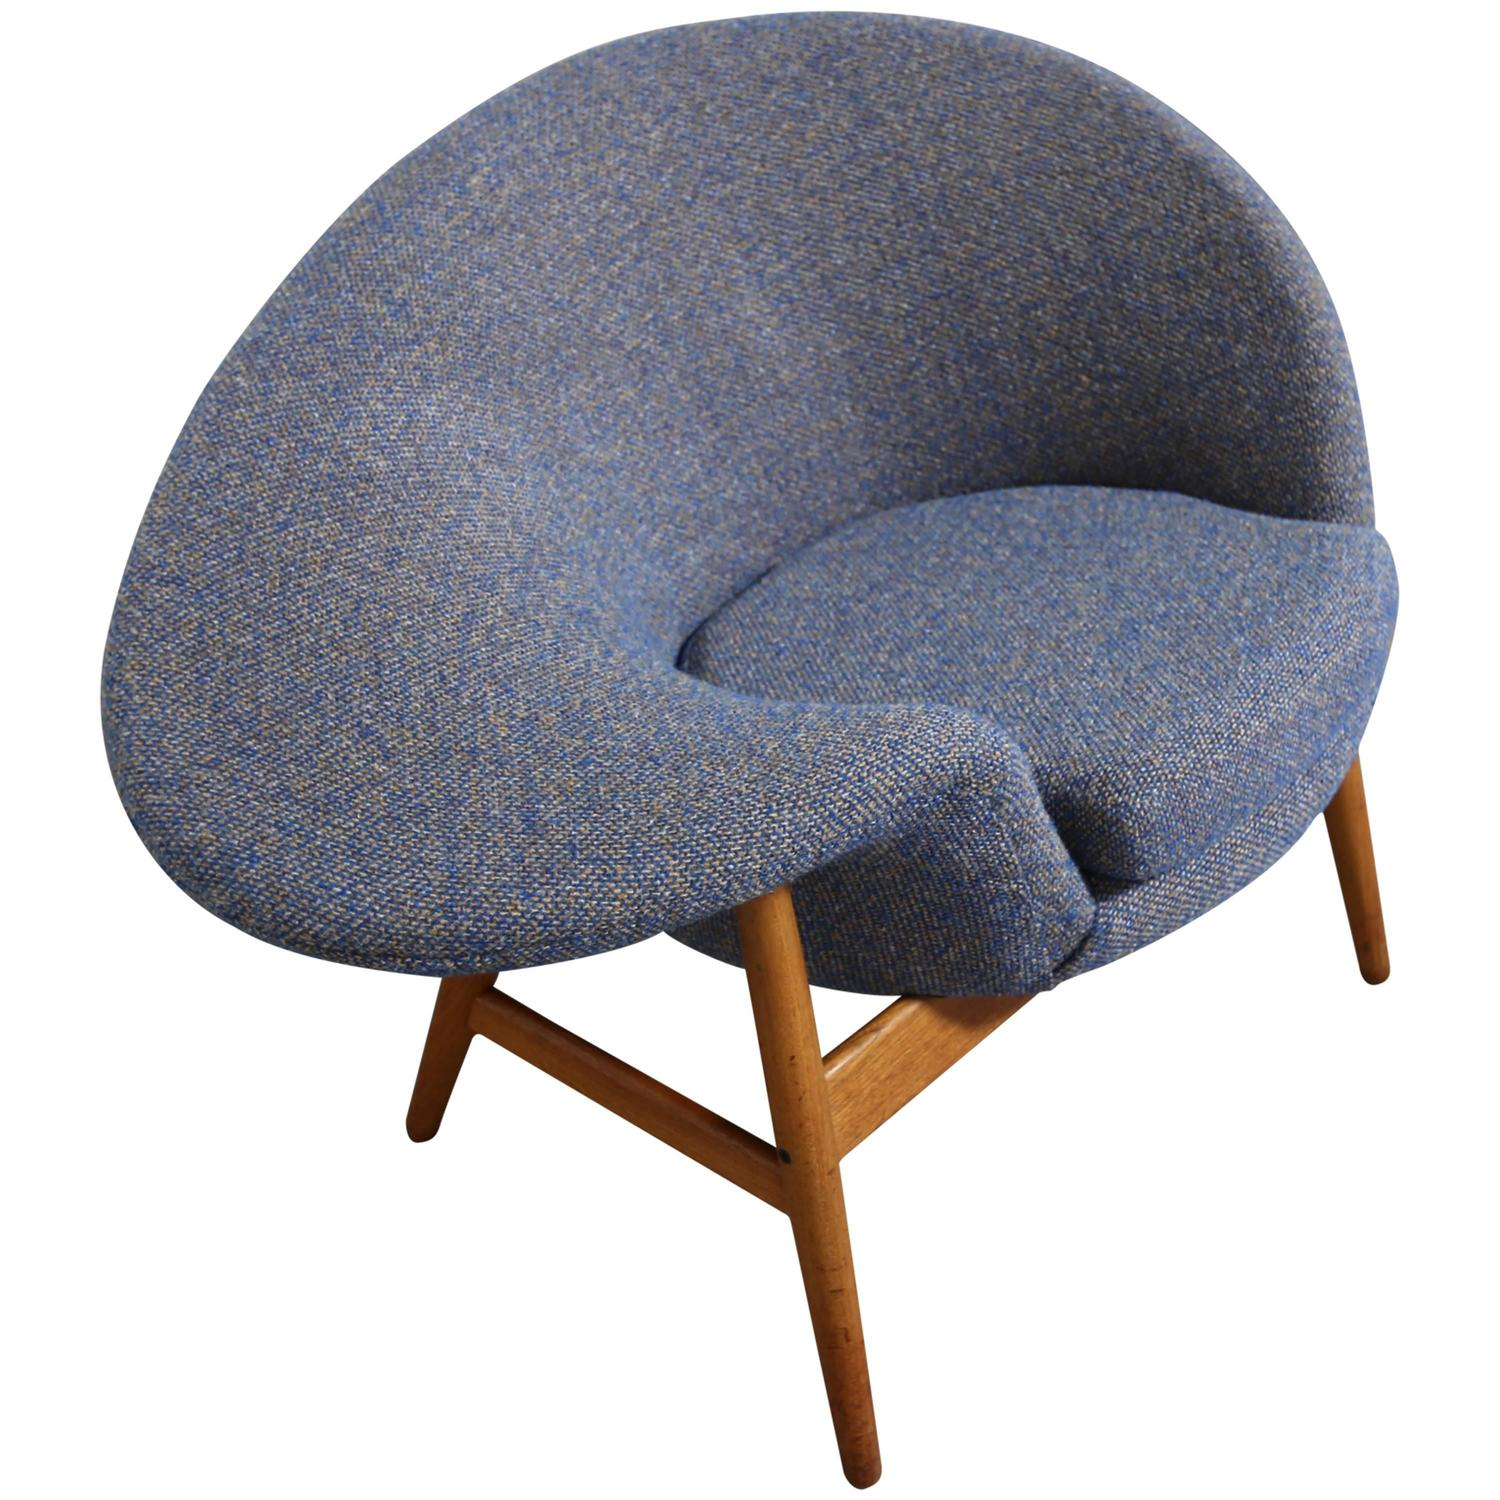 Fried Egg Chair By Hans Olsen For Sale At 1stdibs